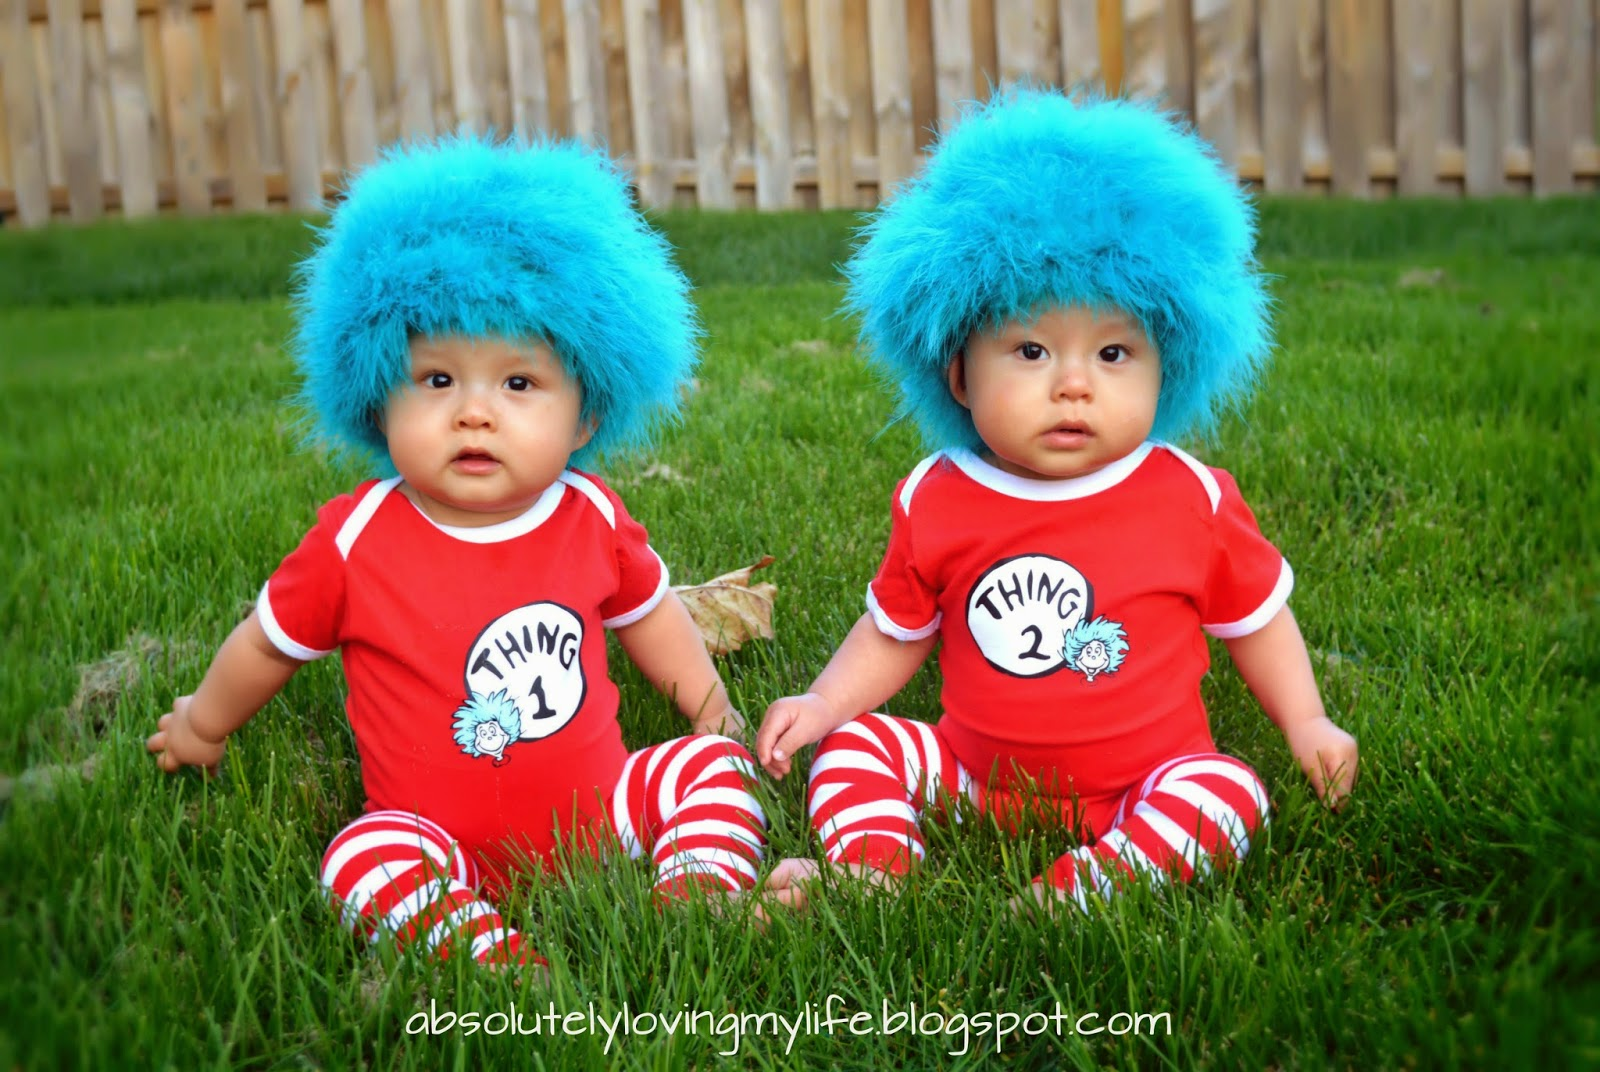 diy thing 1 and thing 2 baby costumes - Thing 1 Thing 2 Halloween Costume